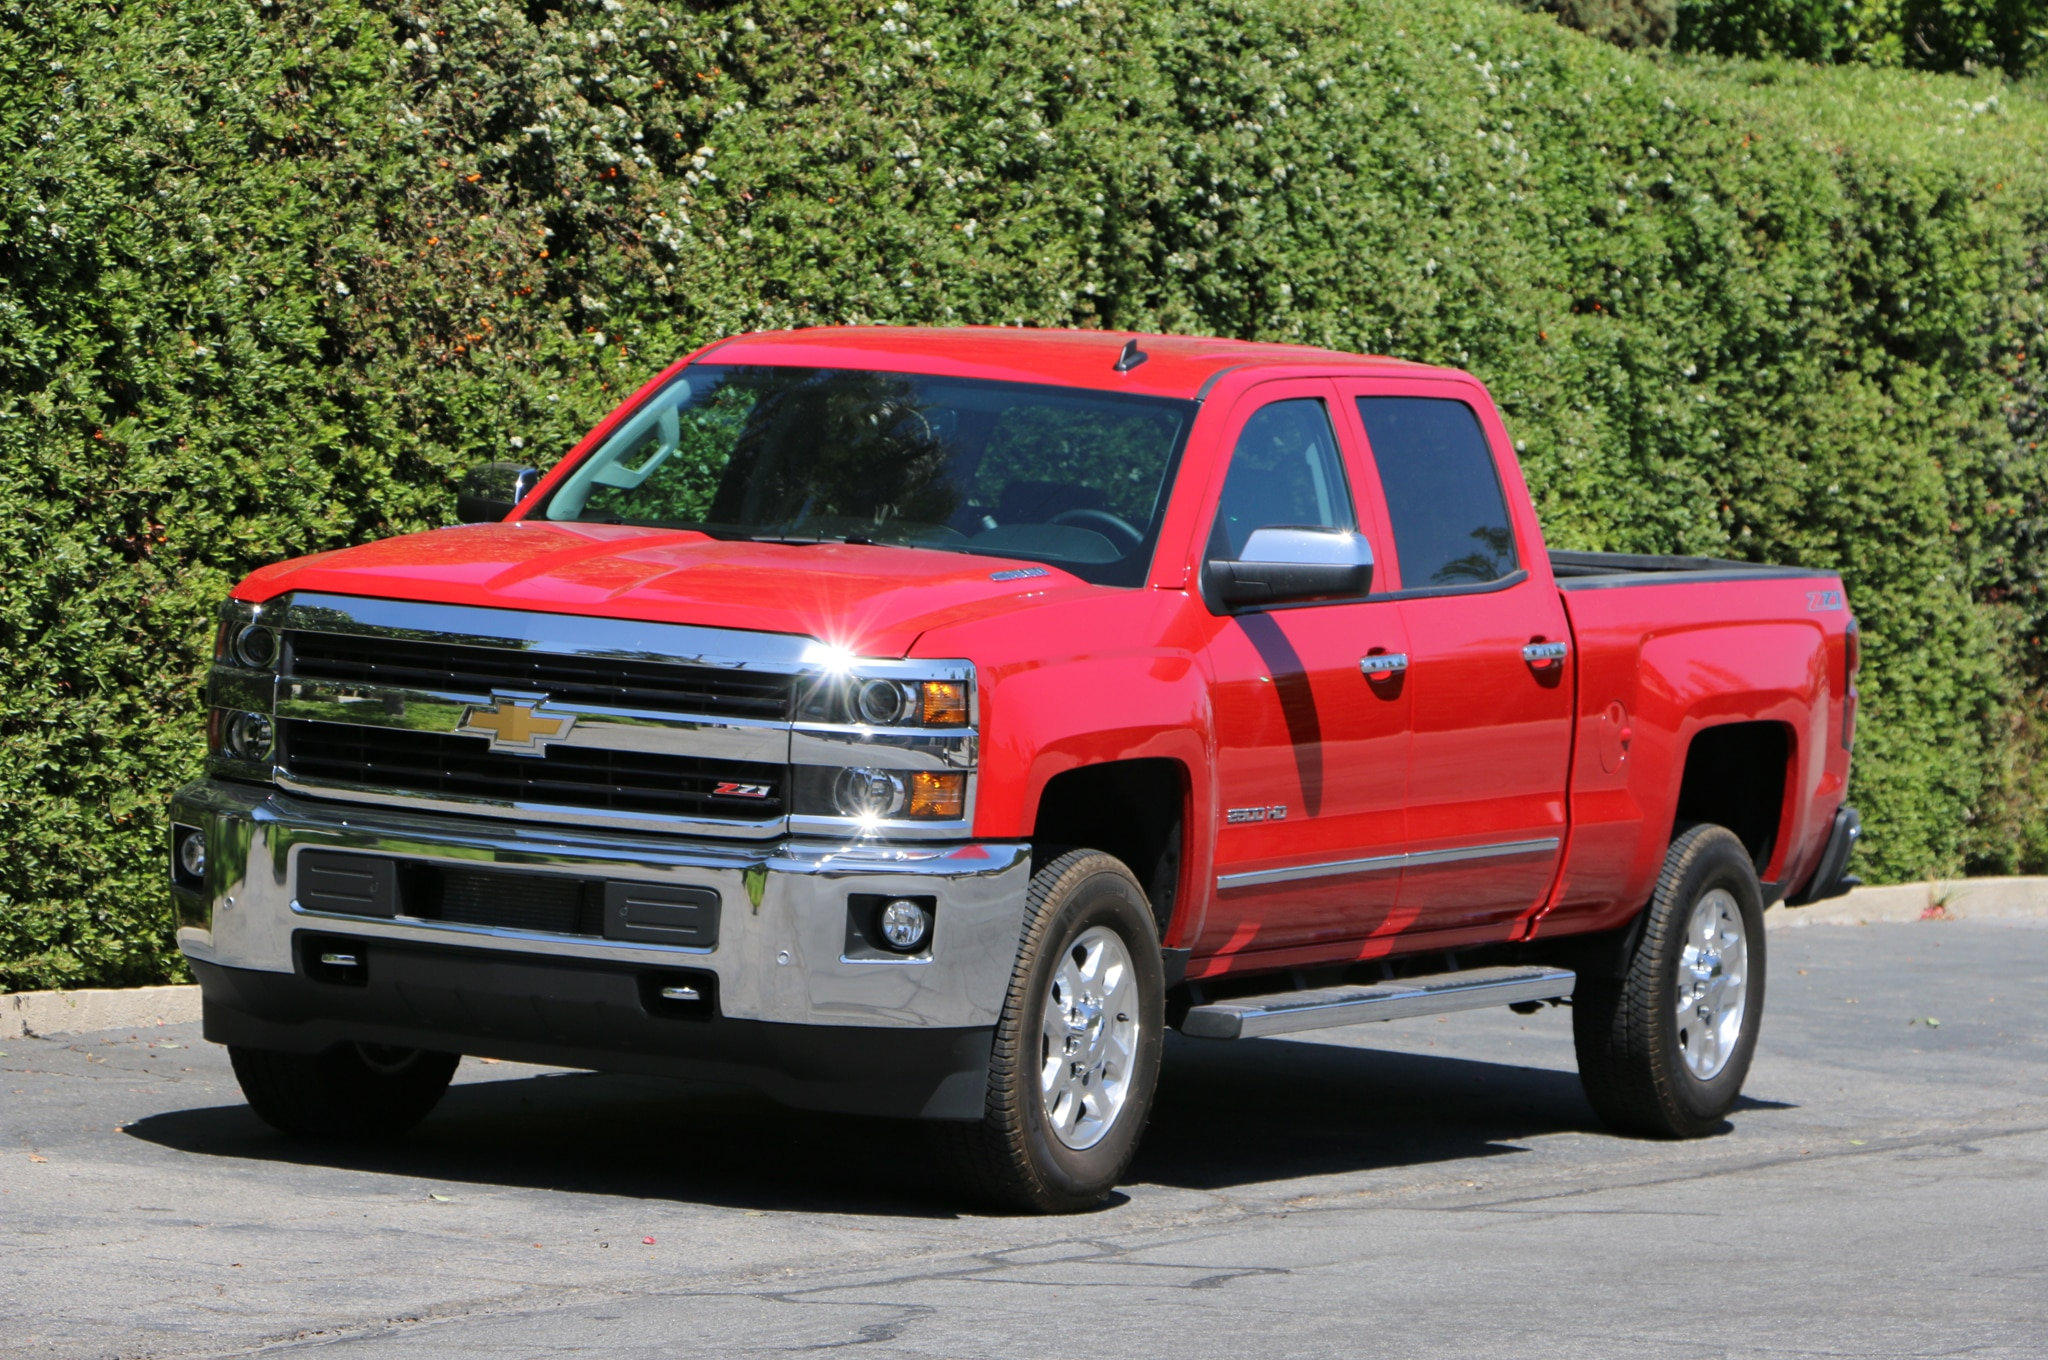 2015 Chevrolet Silverado 2500 4WD LTZ Crew Cab: Around The ...